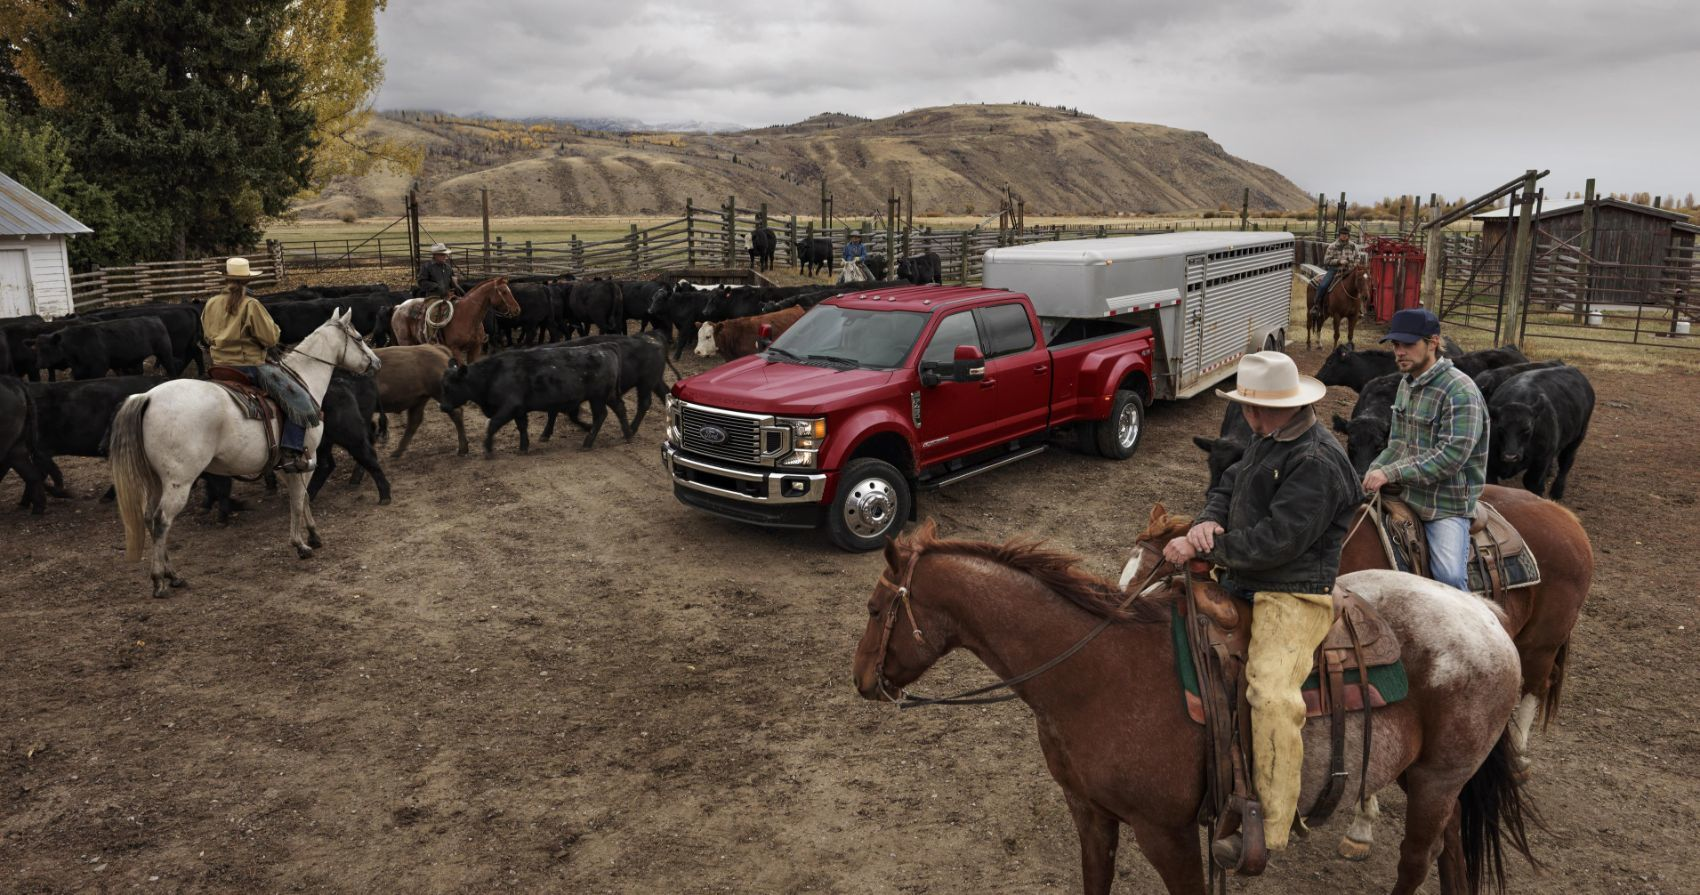 2020 Ford Super Duty The Workhorse For The City Of Tomorrow